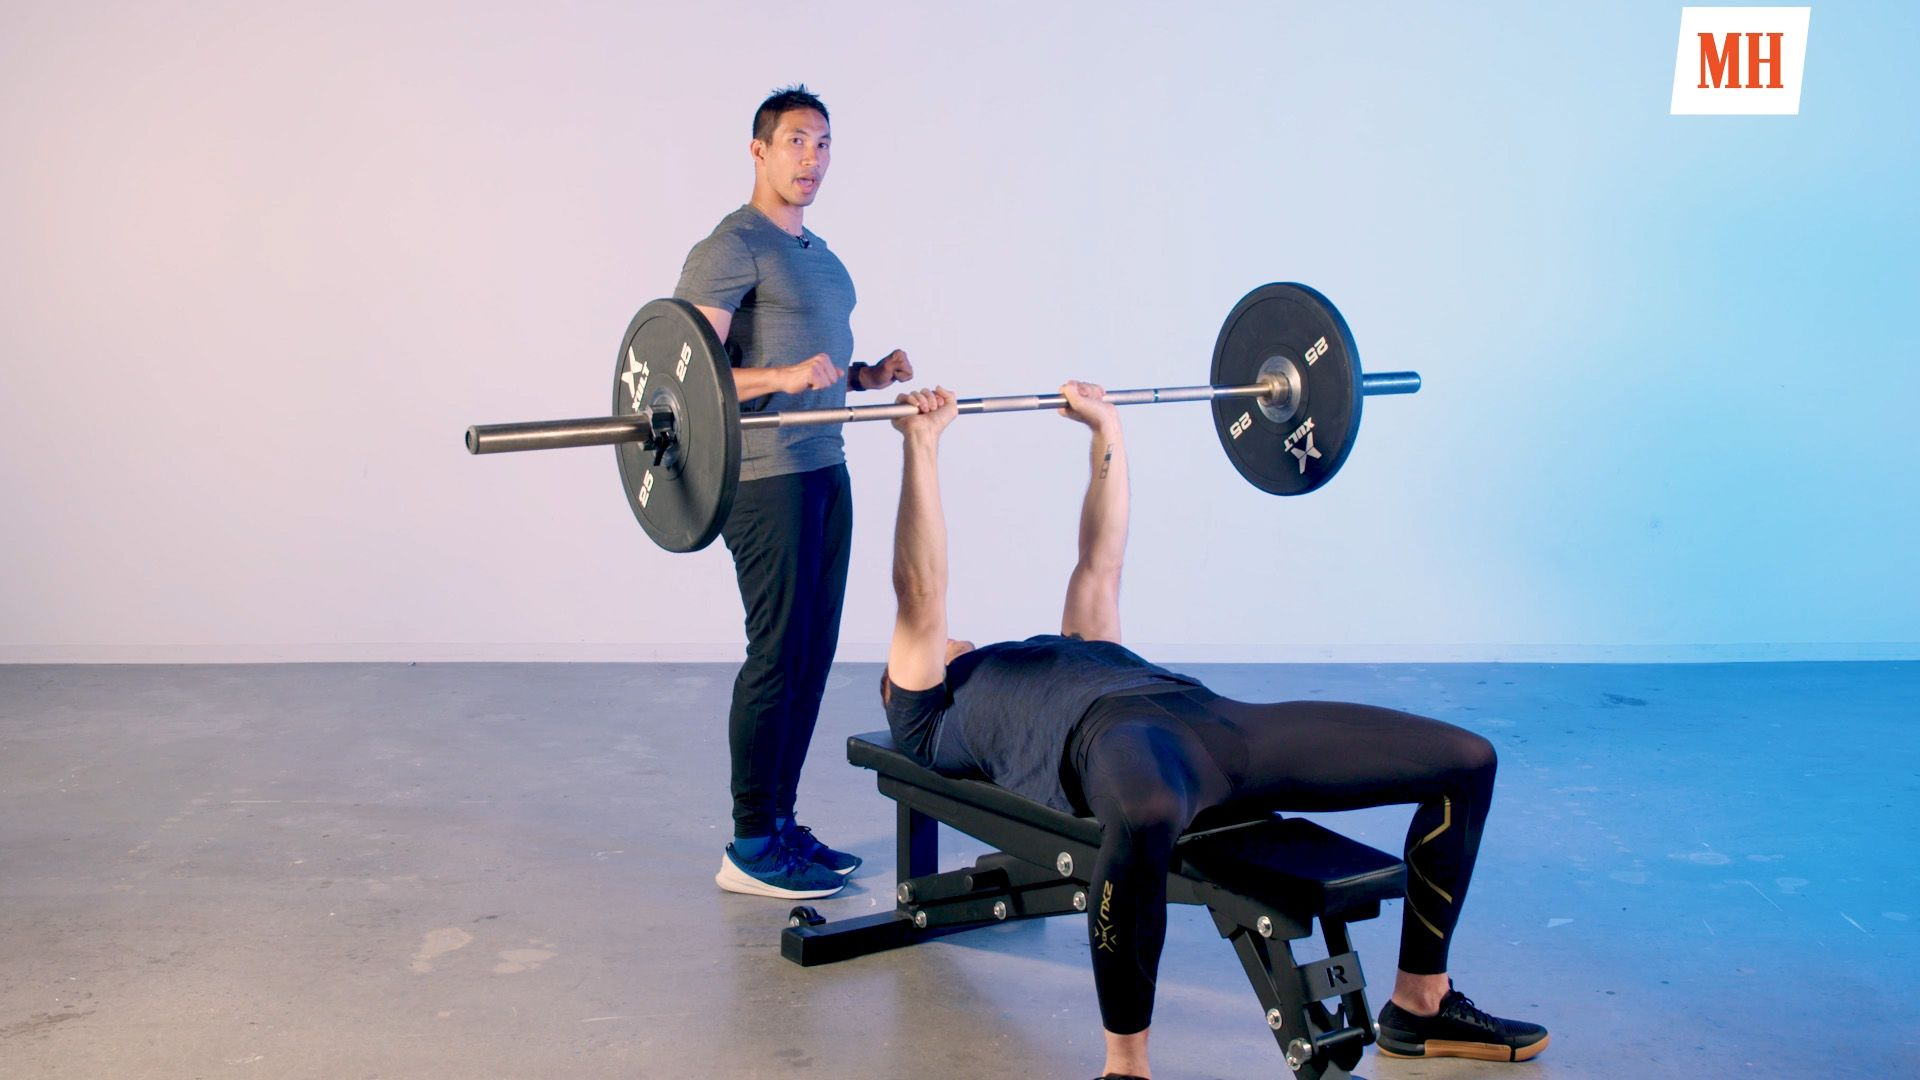 You're Doing the Close Grip Bench Press Wrong. Here's How to Fix That.